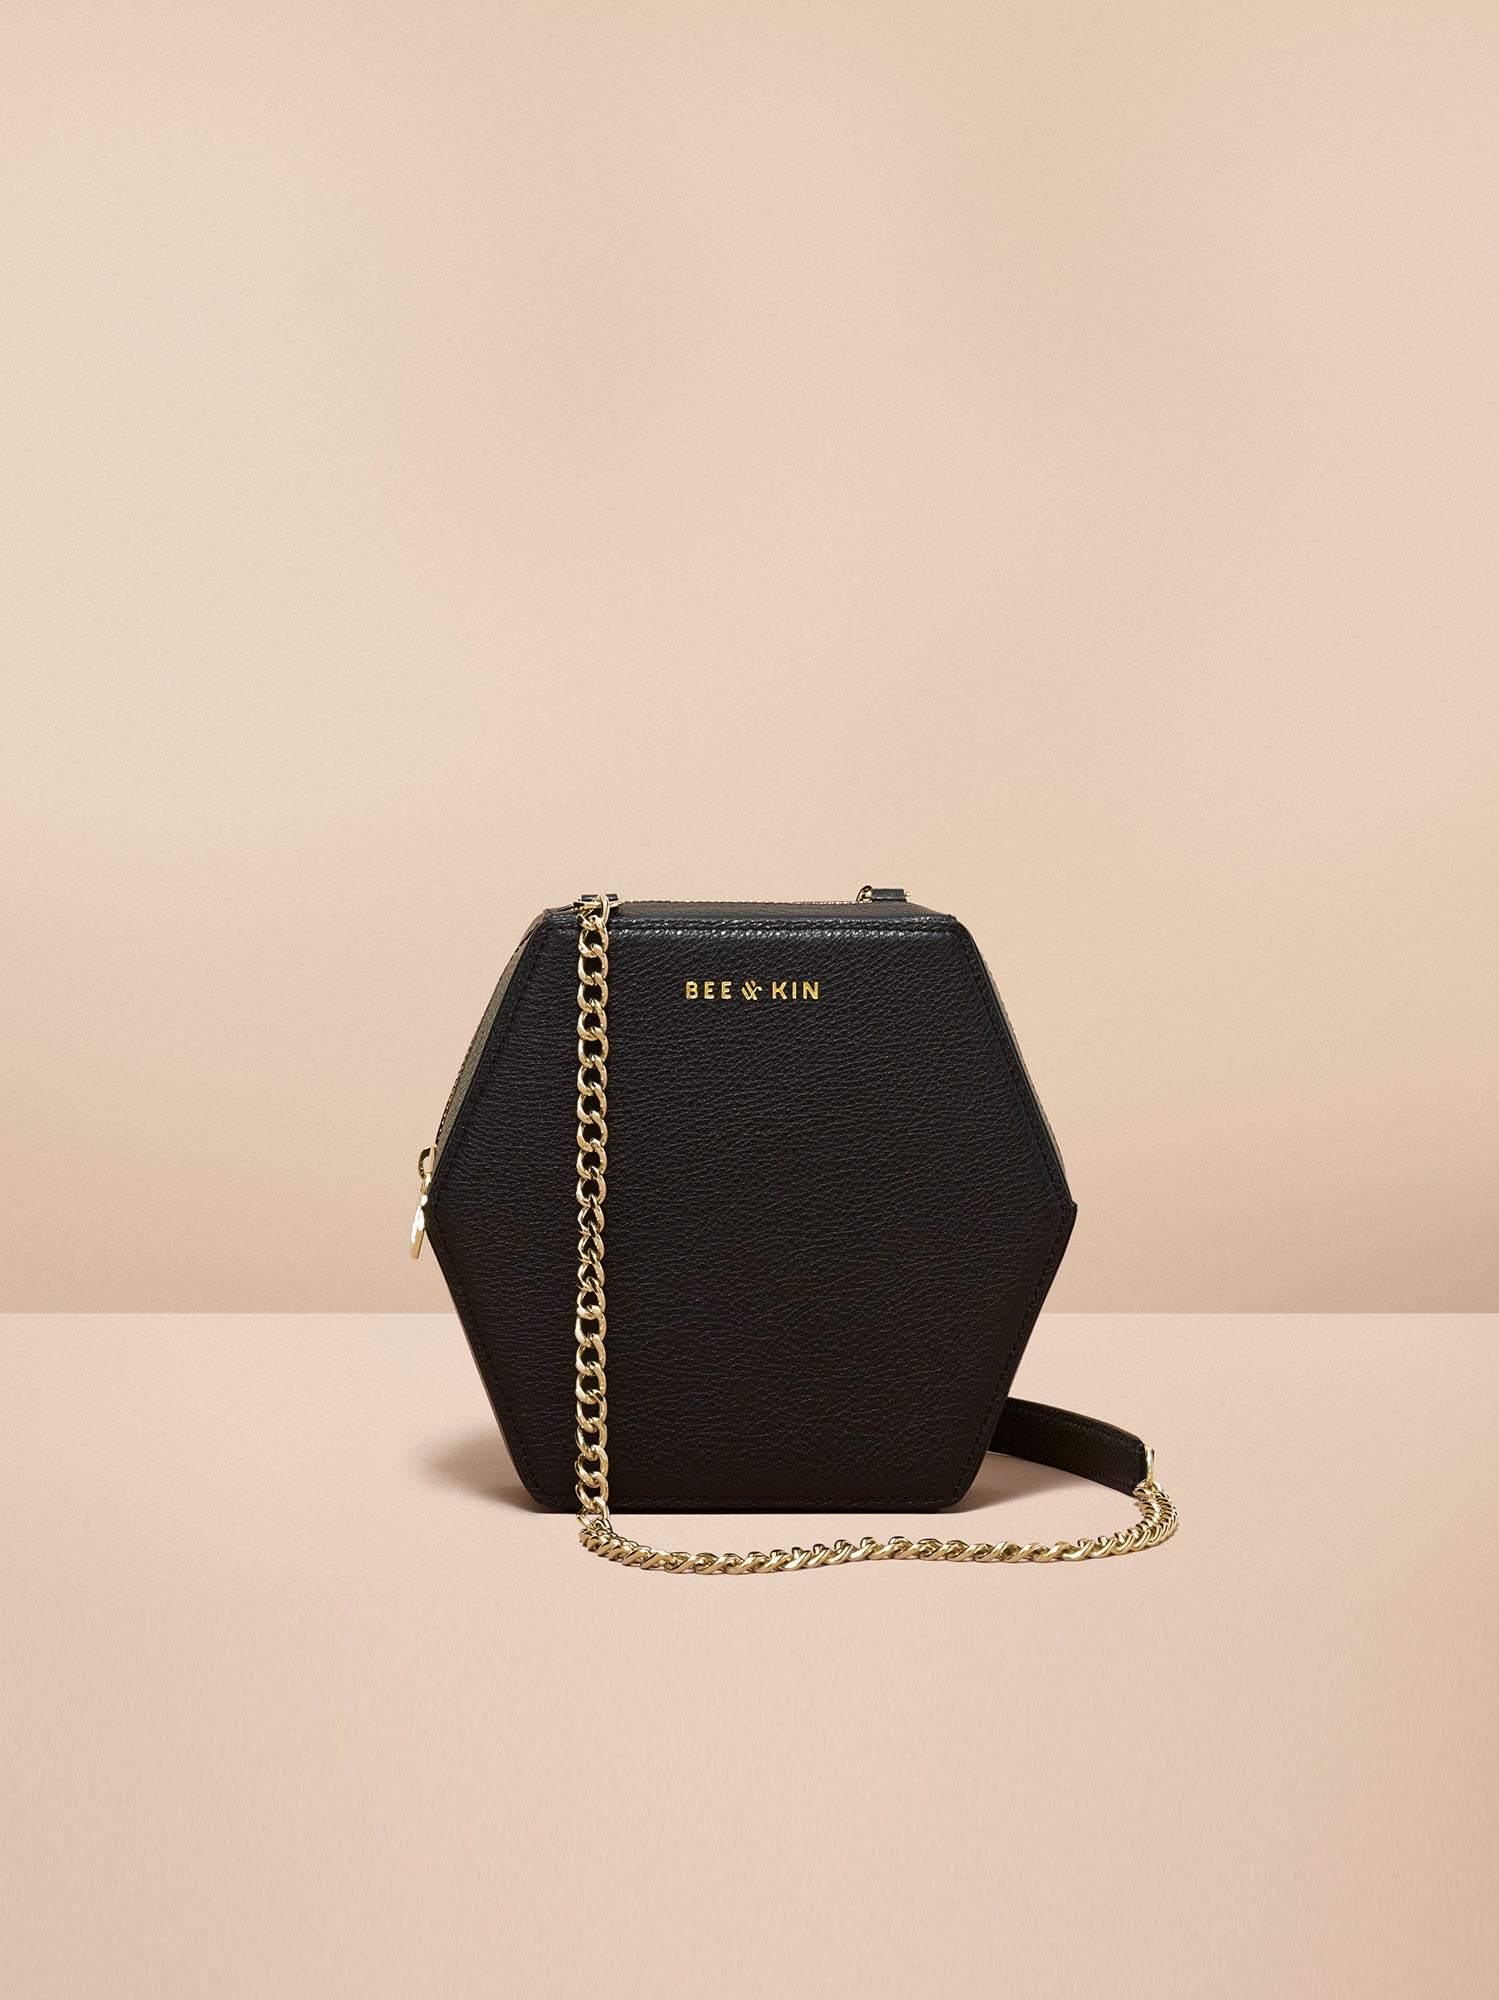 The Sidekick Cross-body / Black